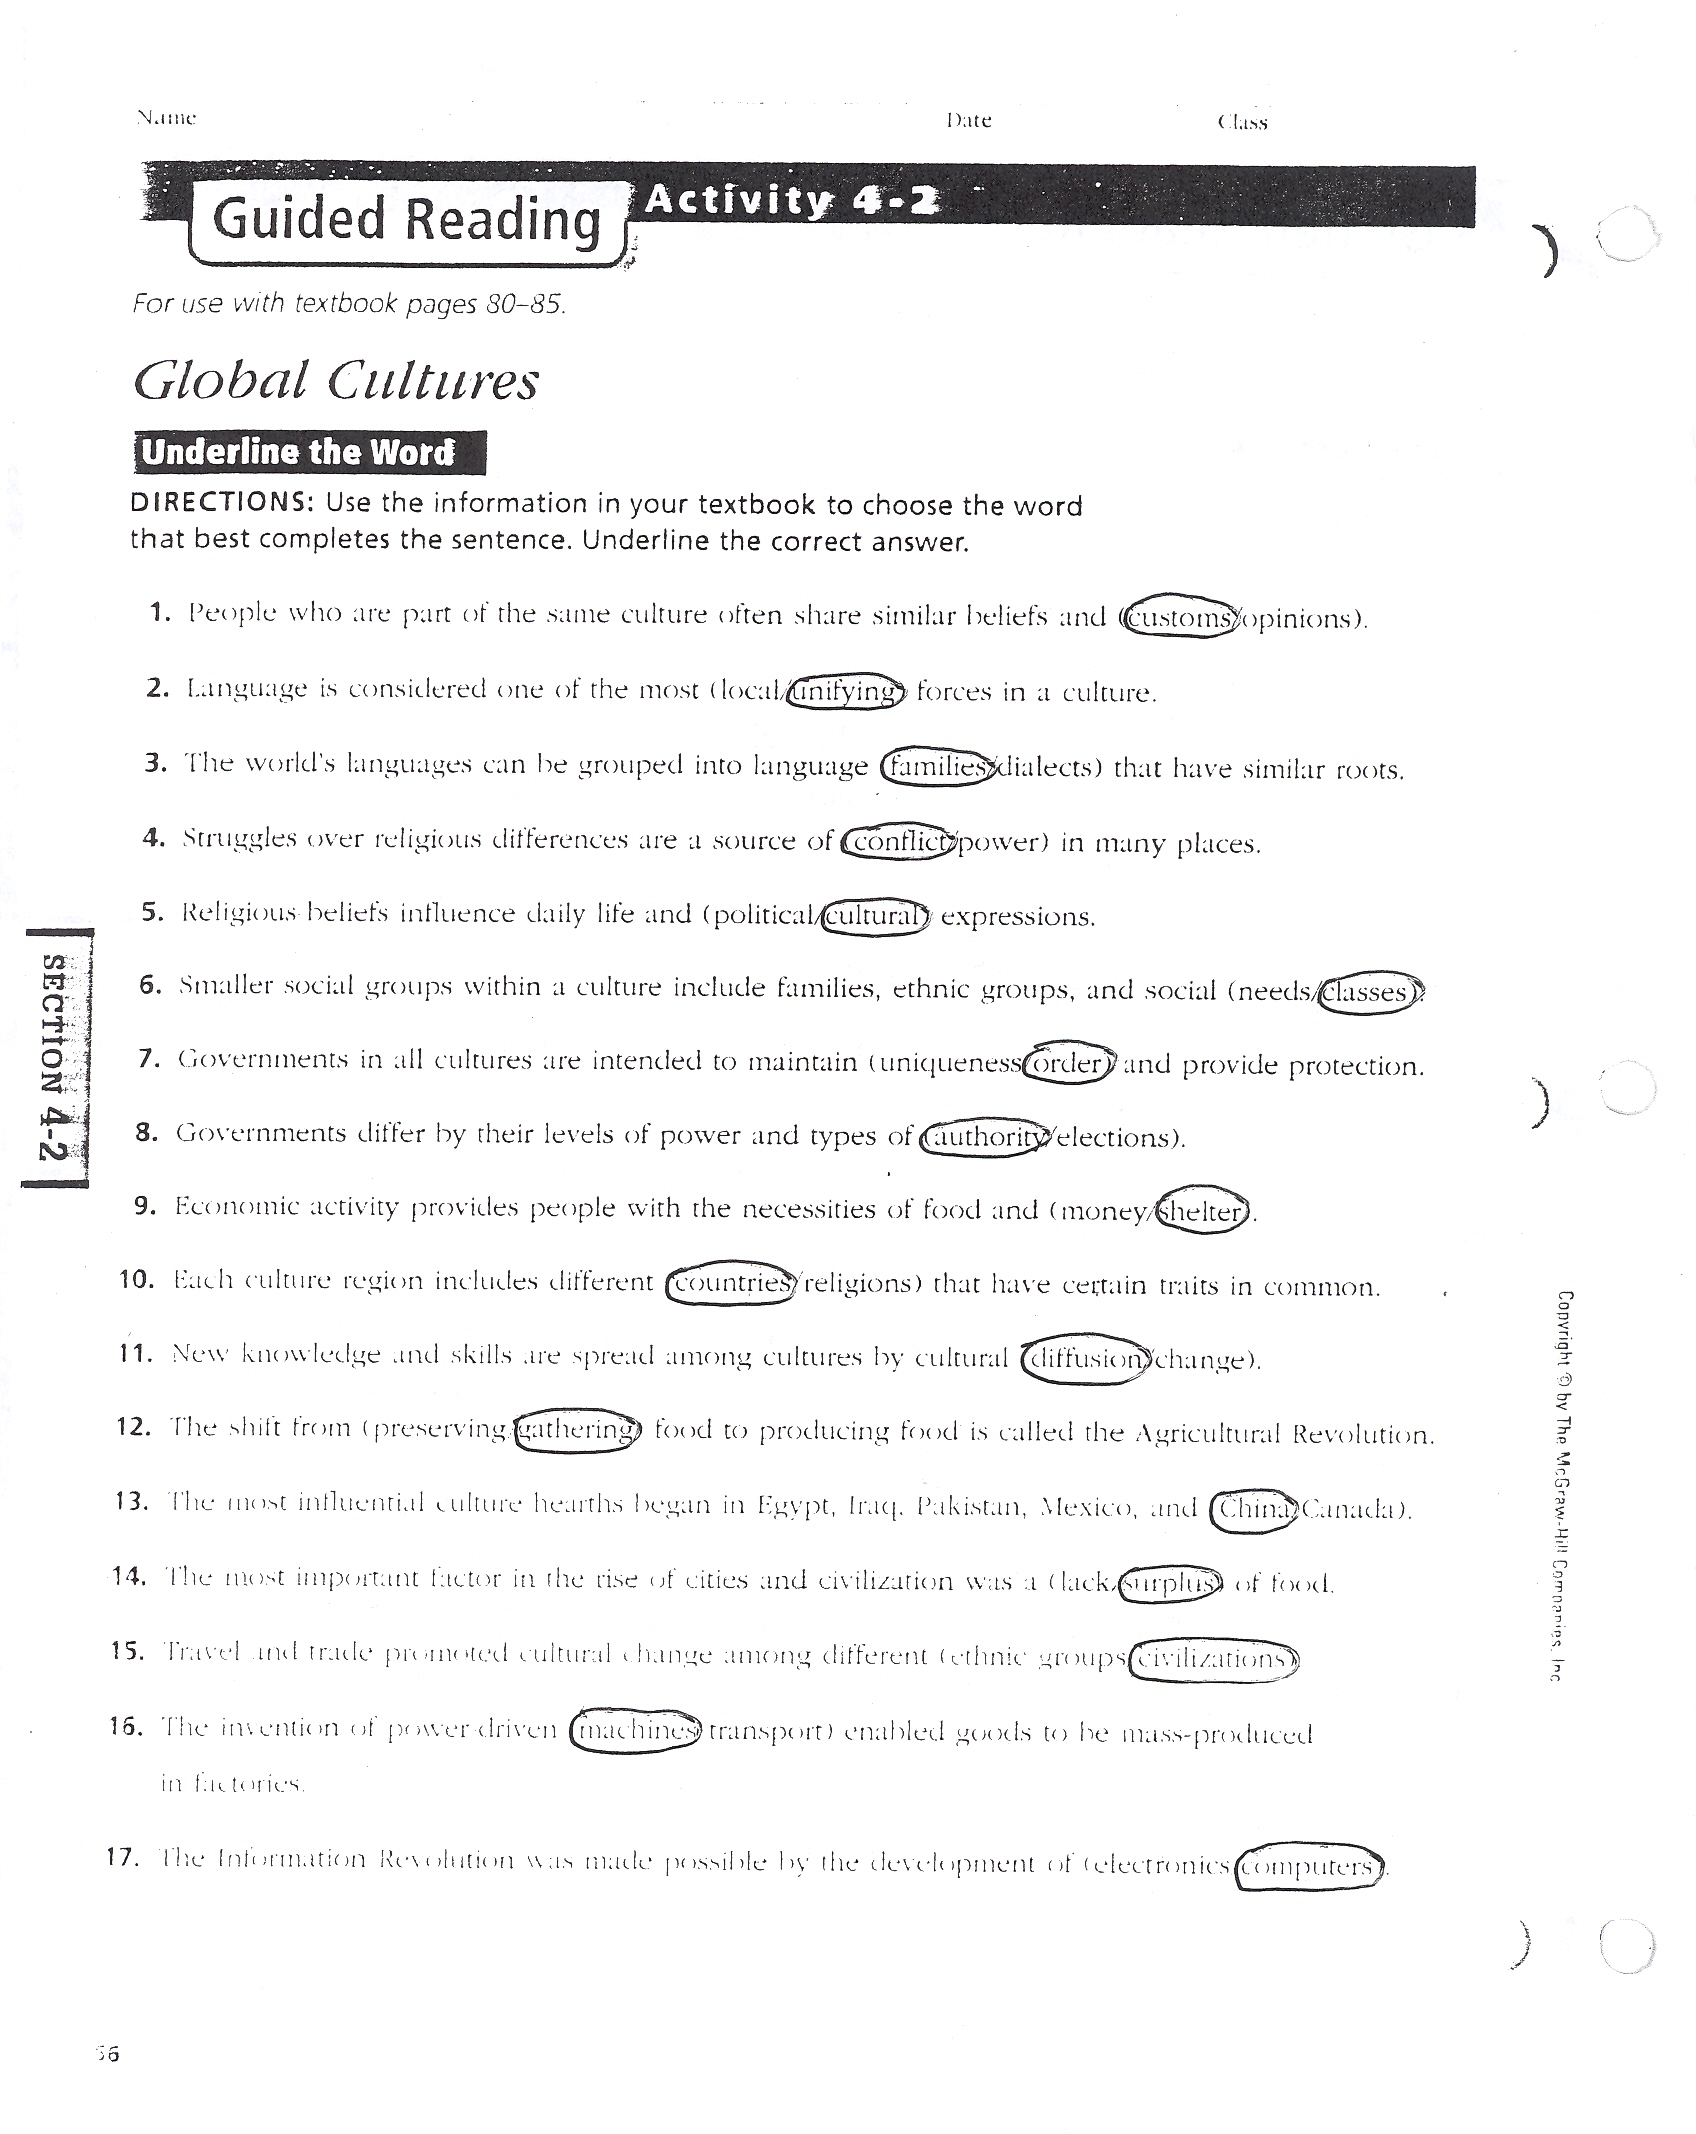 world history world geography rh acedwardslobos86 com School Answer Keys Answer Key Sheet